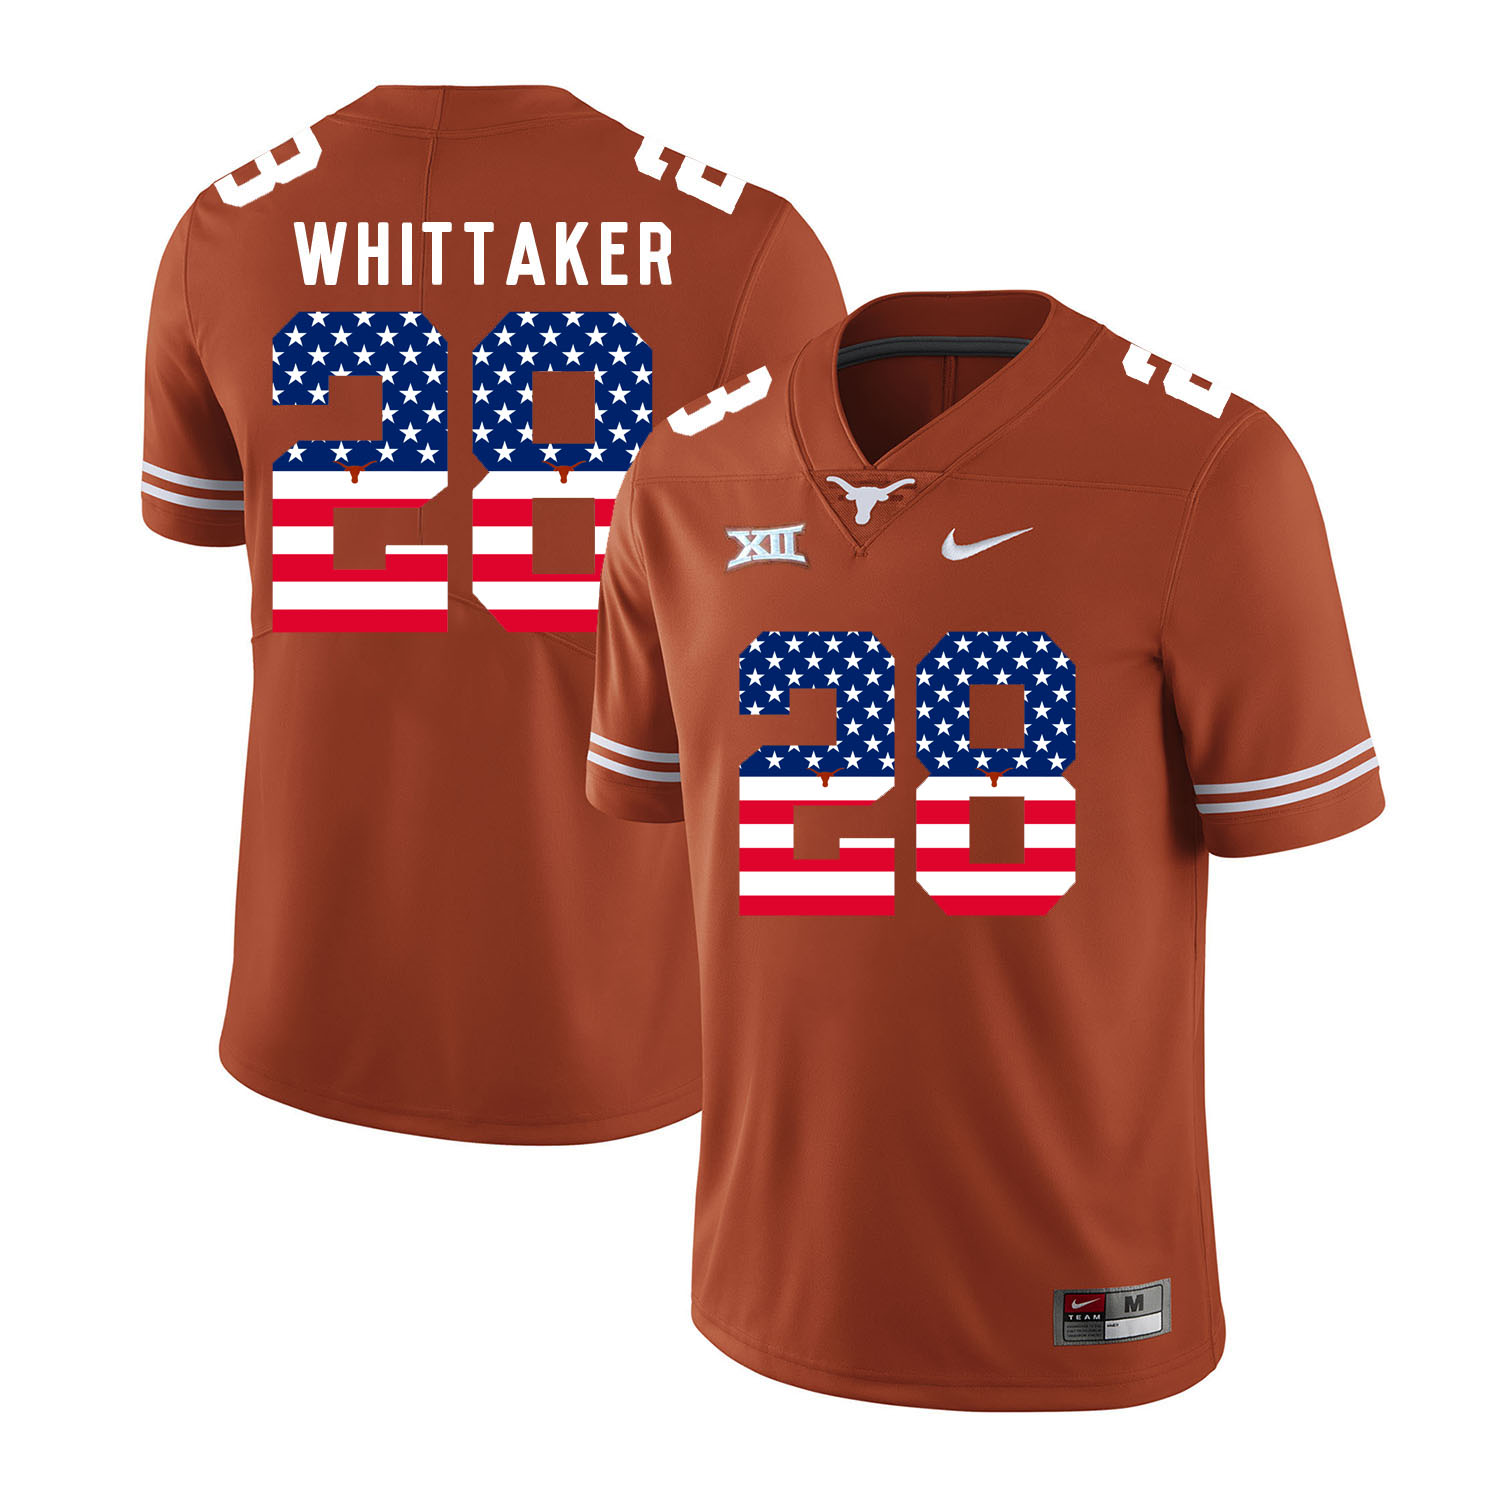 Texas Longhorns 28 Fozzy Whittaker Orange USA Flag Nike College Football Jersey